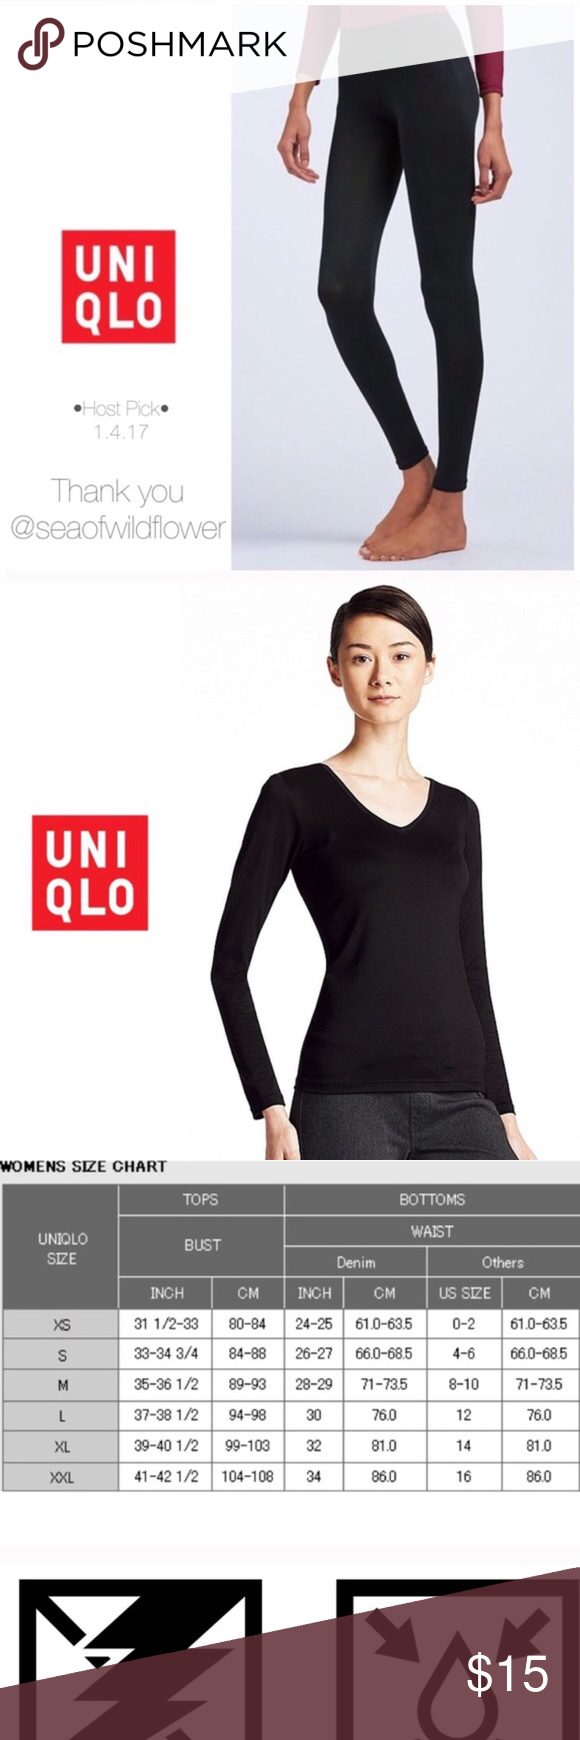 Sold Out New Uniqlo Xs Top Boutique Leggings Are Not Pants Uniqlo Pants Uniqlo Tops